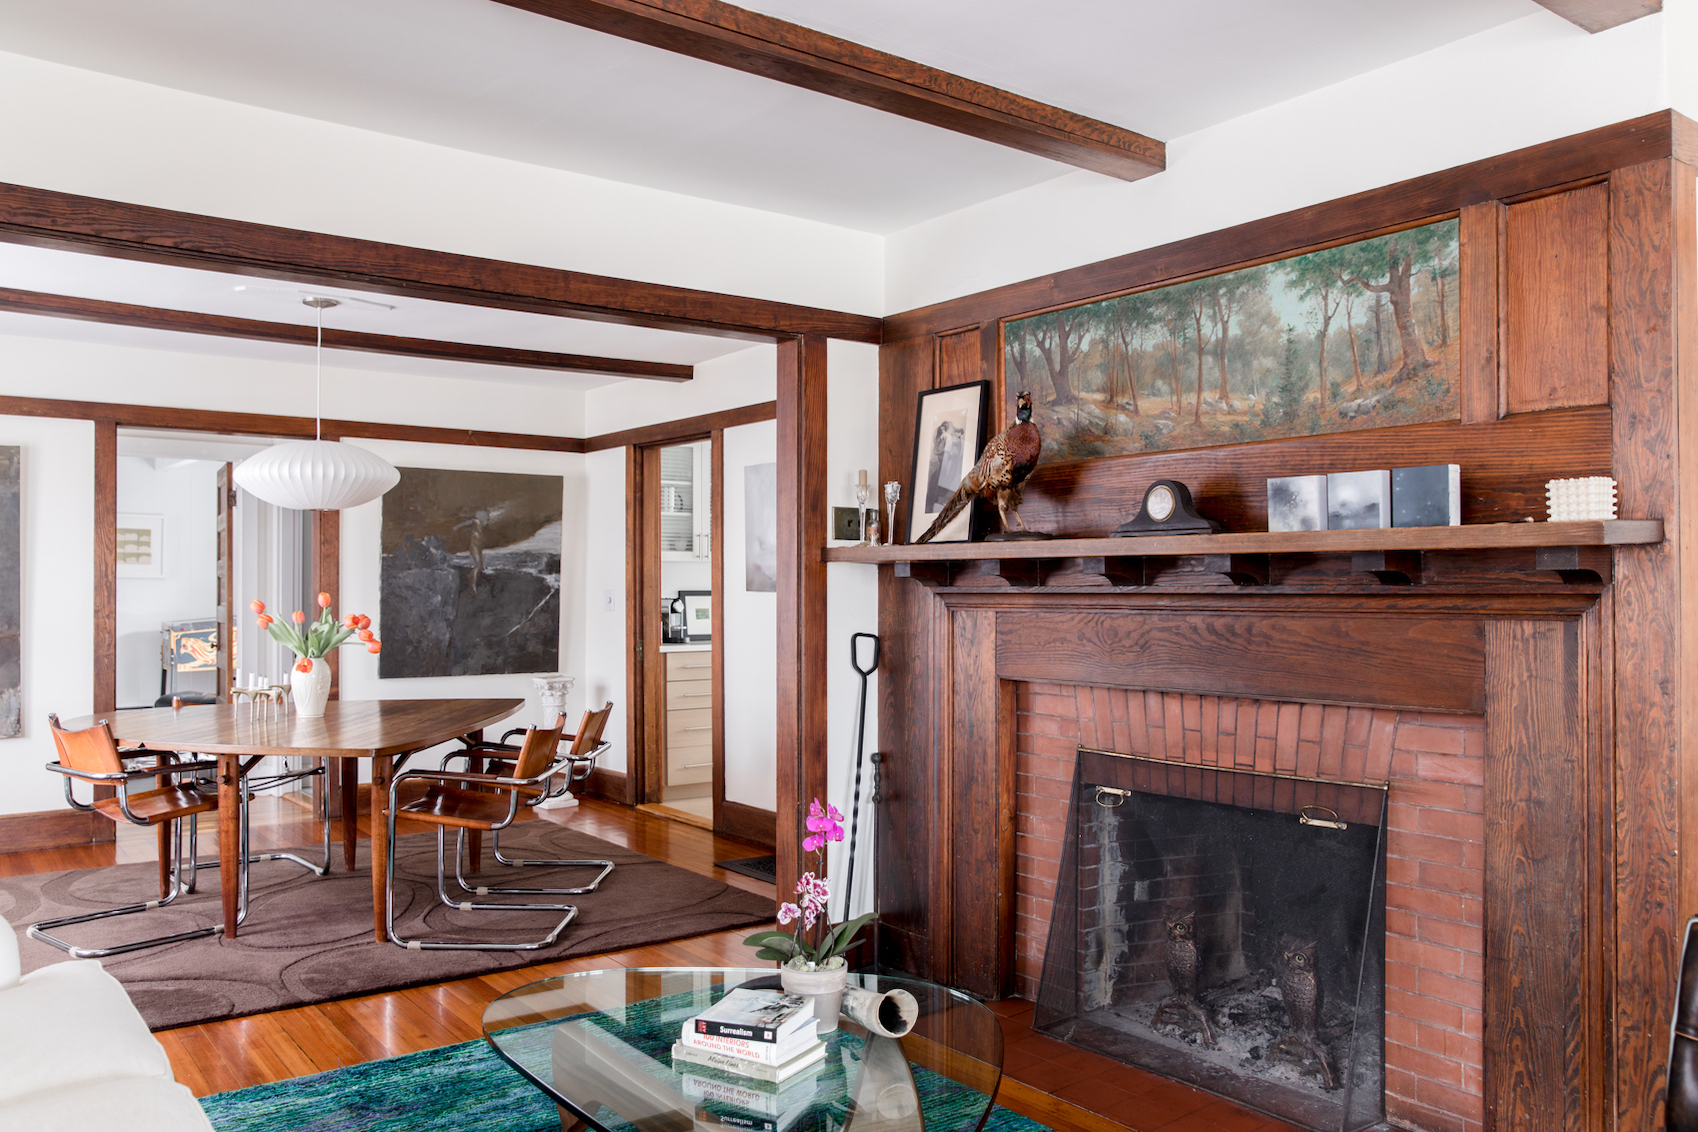 An Arts Crafts Home In Maine Full Of Old New Stories Design Sponge